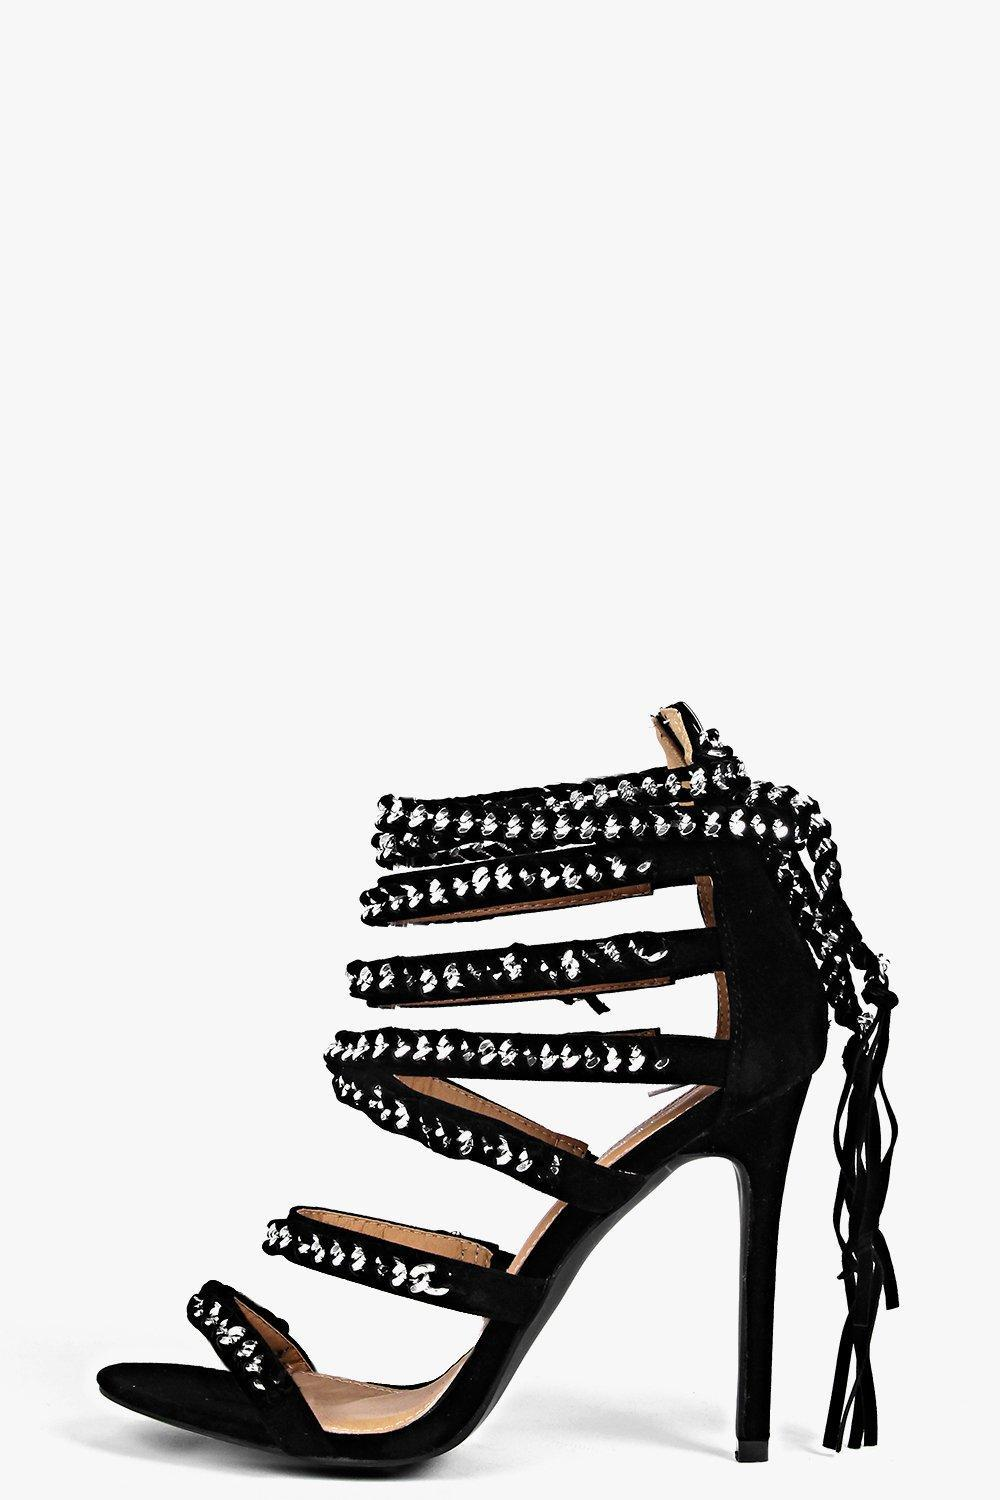 Chain And Multi Strap Heels Black - predominant colour: black; occasions: evening, occasion; material: faux leather; heel height: high; embellishment: feathers; ankle detail: ankle tie; heel: stiletto; toe: open toe/peeptoe; style: strappy; finish: plain; pattern: colourblock; season: s/s 2016; wardrobe: event